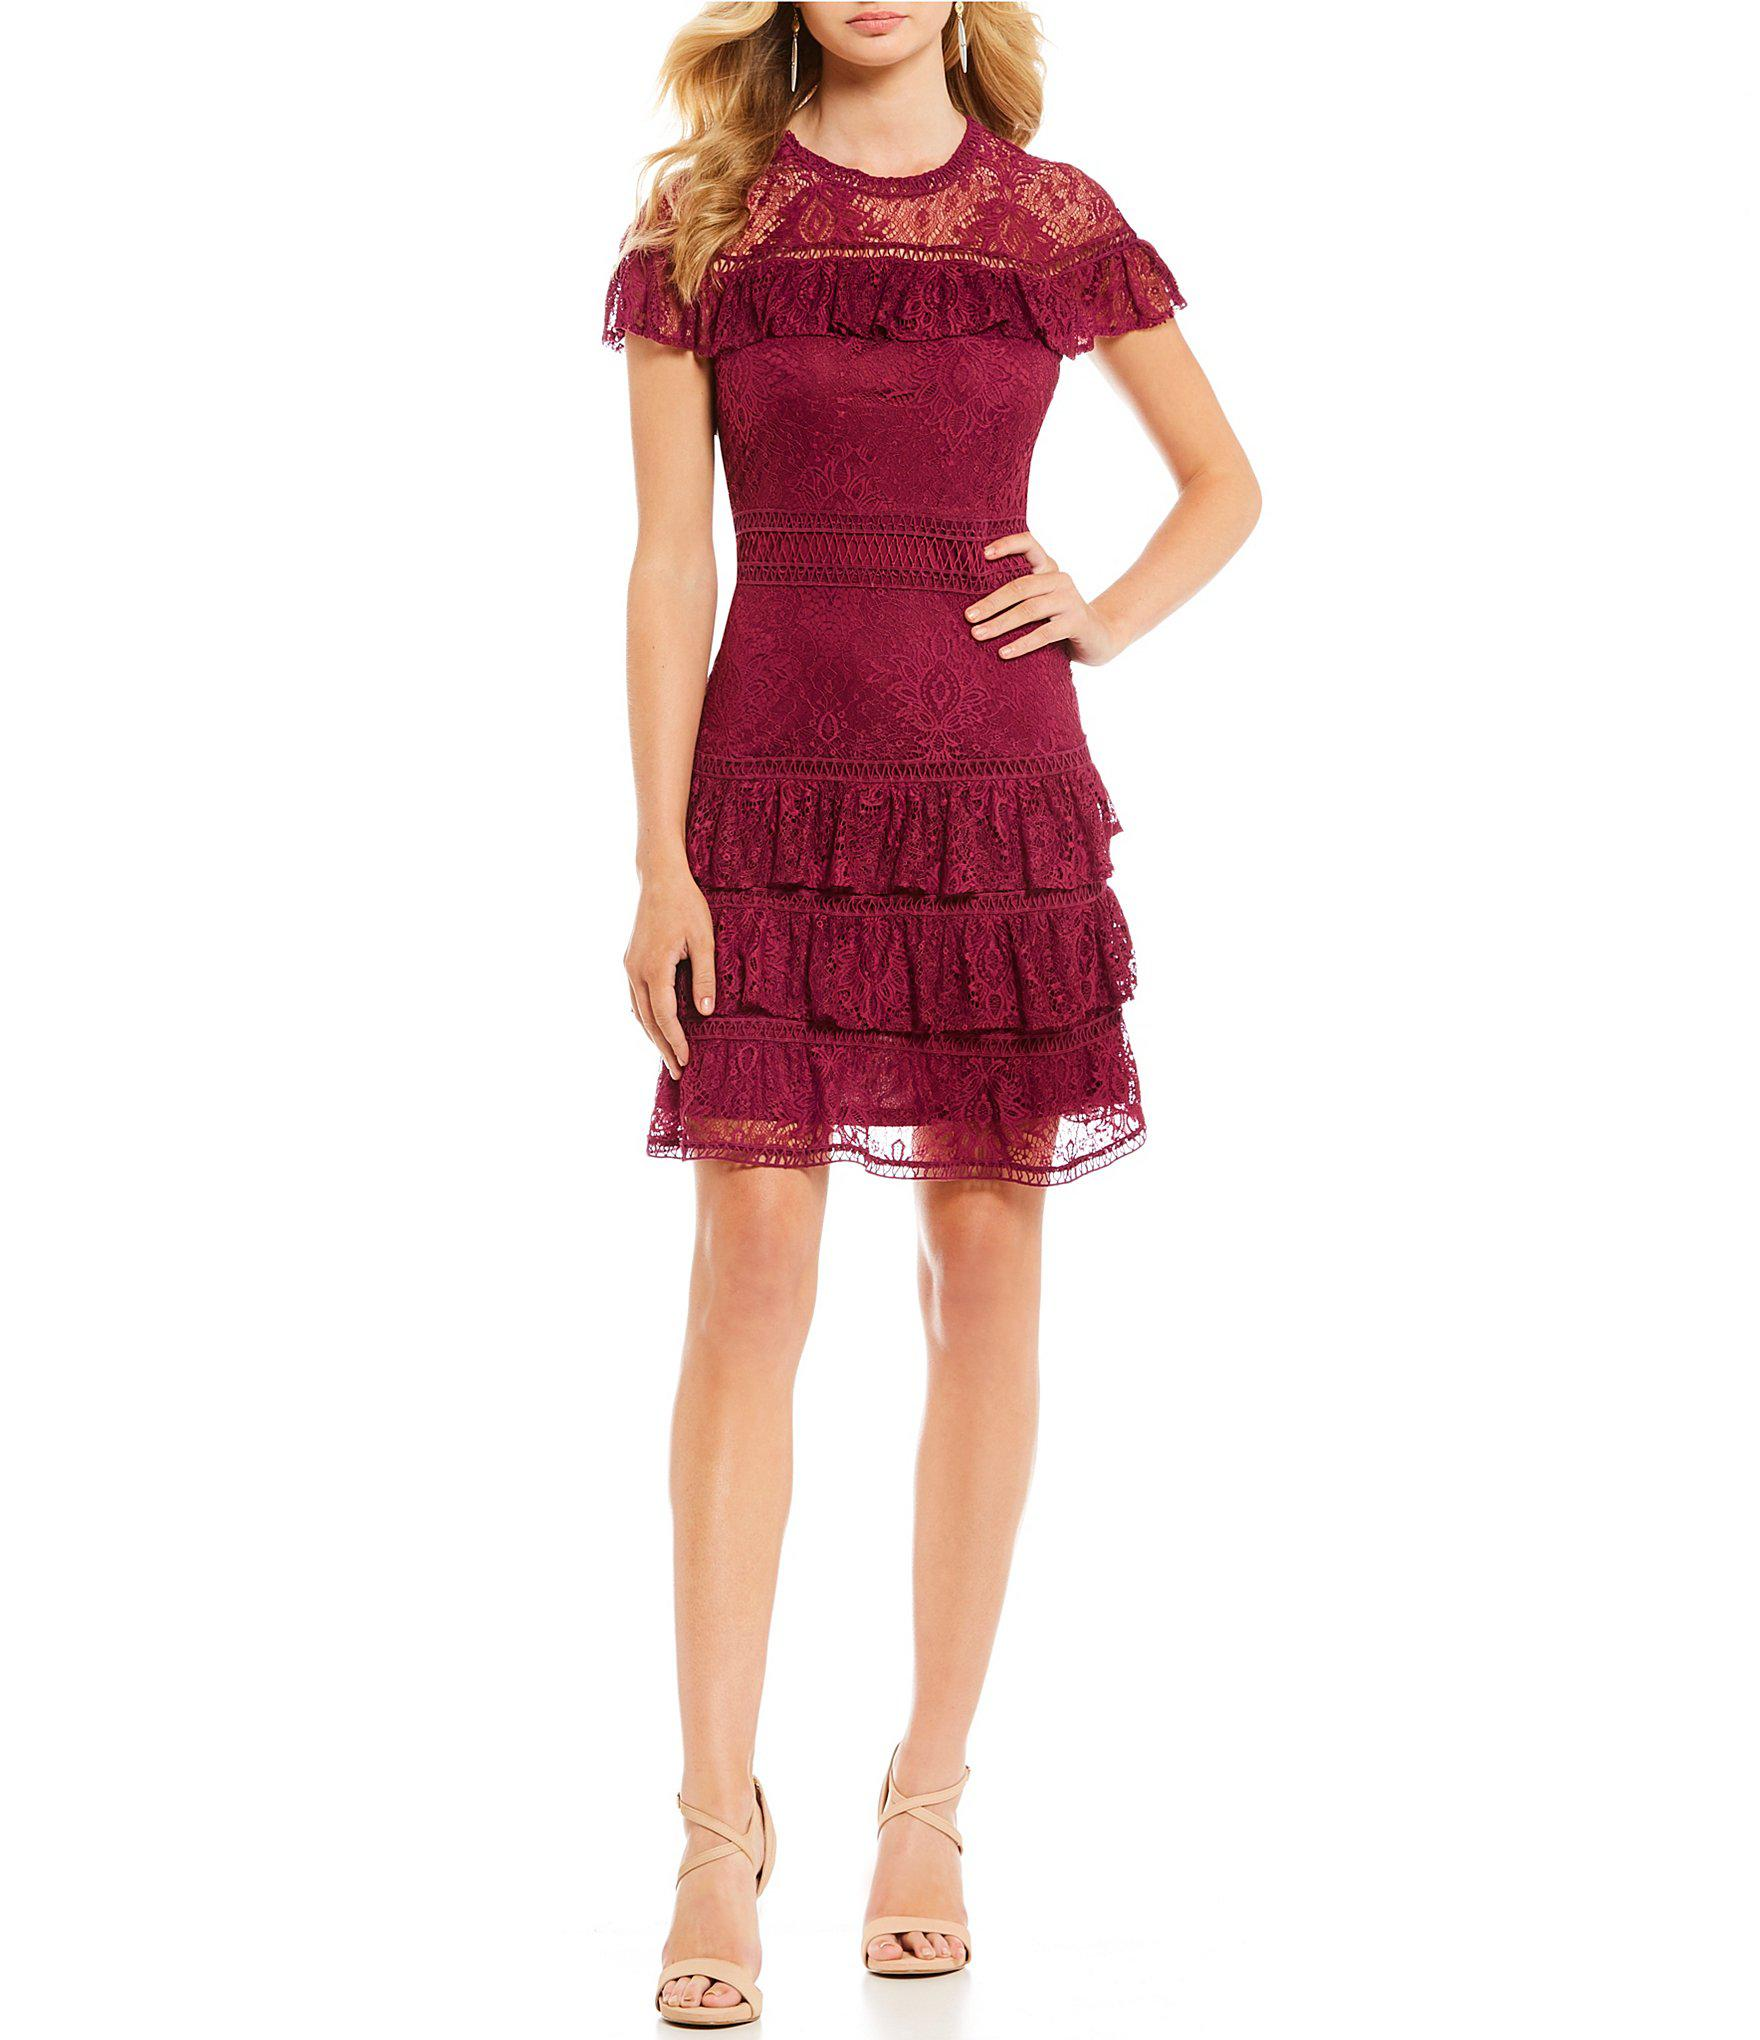 d81b5fdb079 Gianni Bini Sandra Ruffle Lace Dress in Red - Lyst